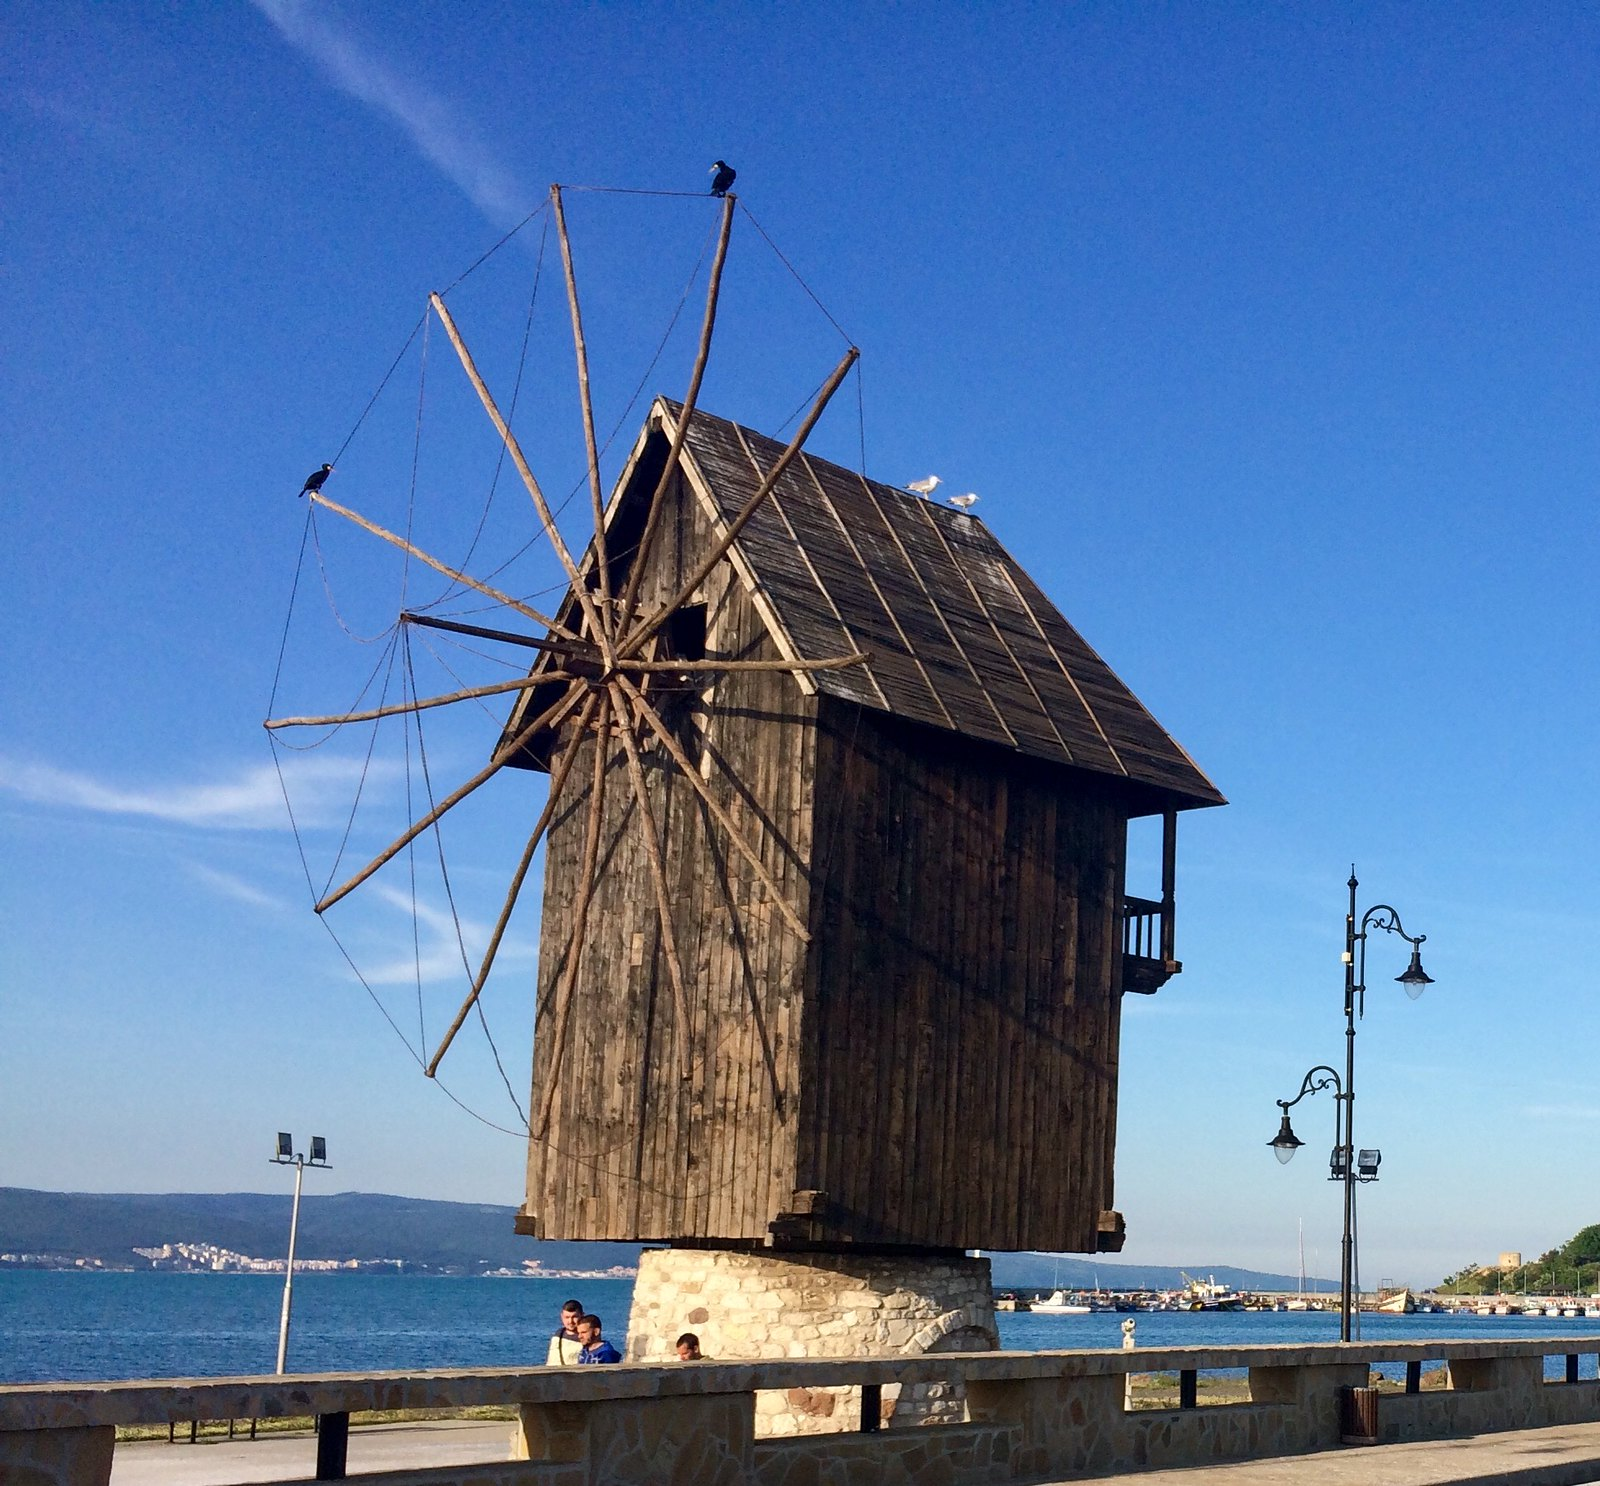 201705 - Balkans - Windmill - 18 of 40 - Ancient City of Nessebar - Burgas, May 24, 2017